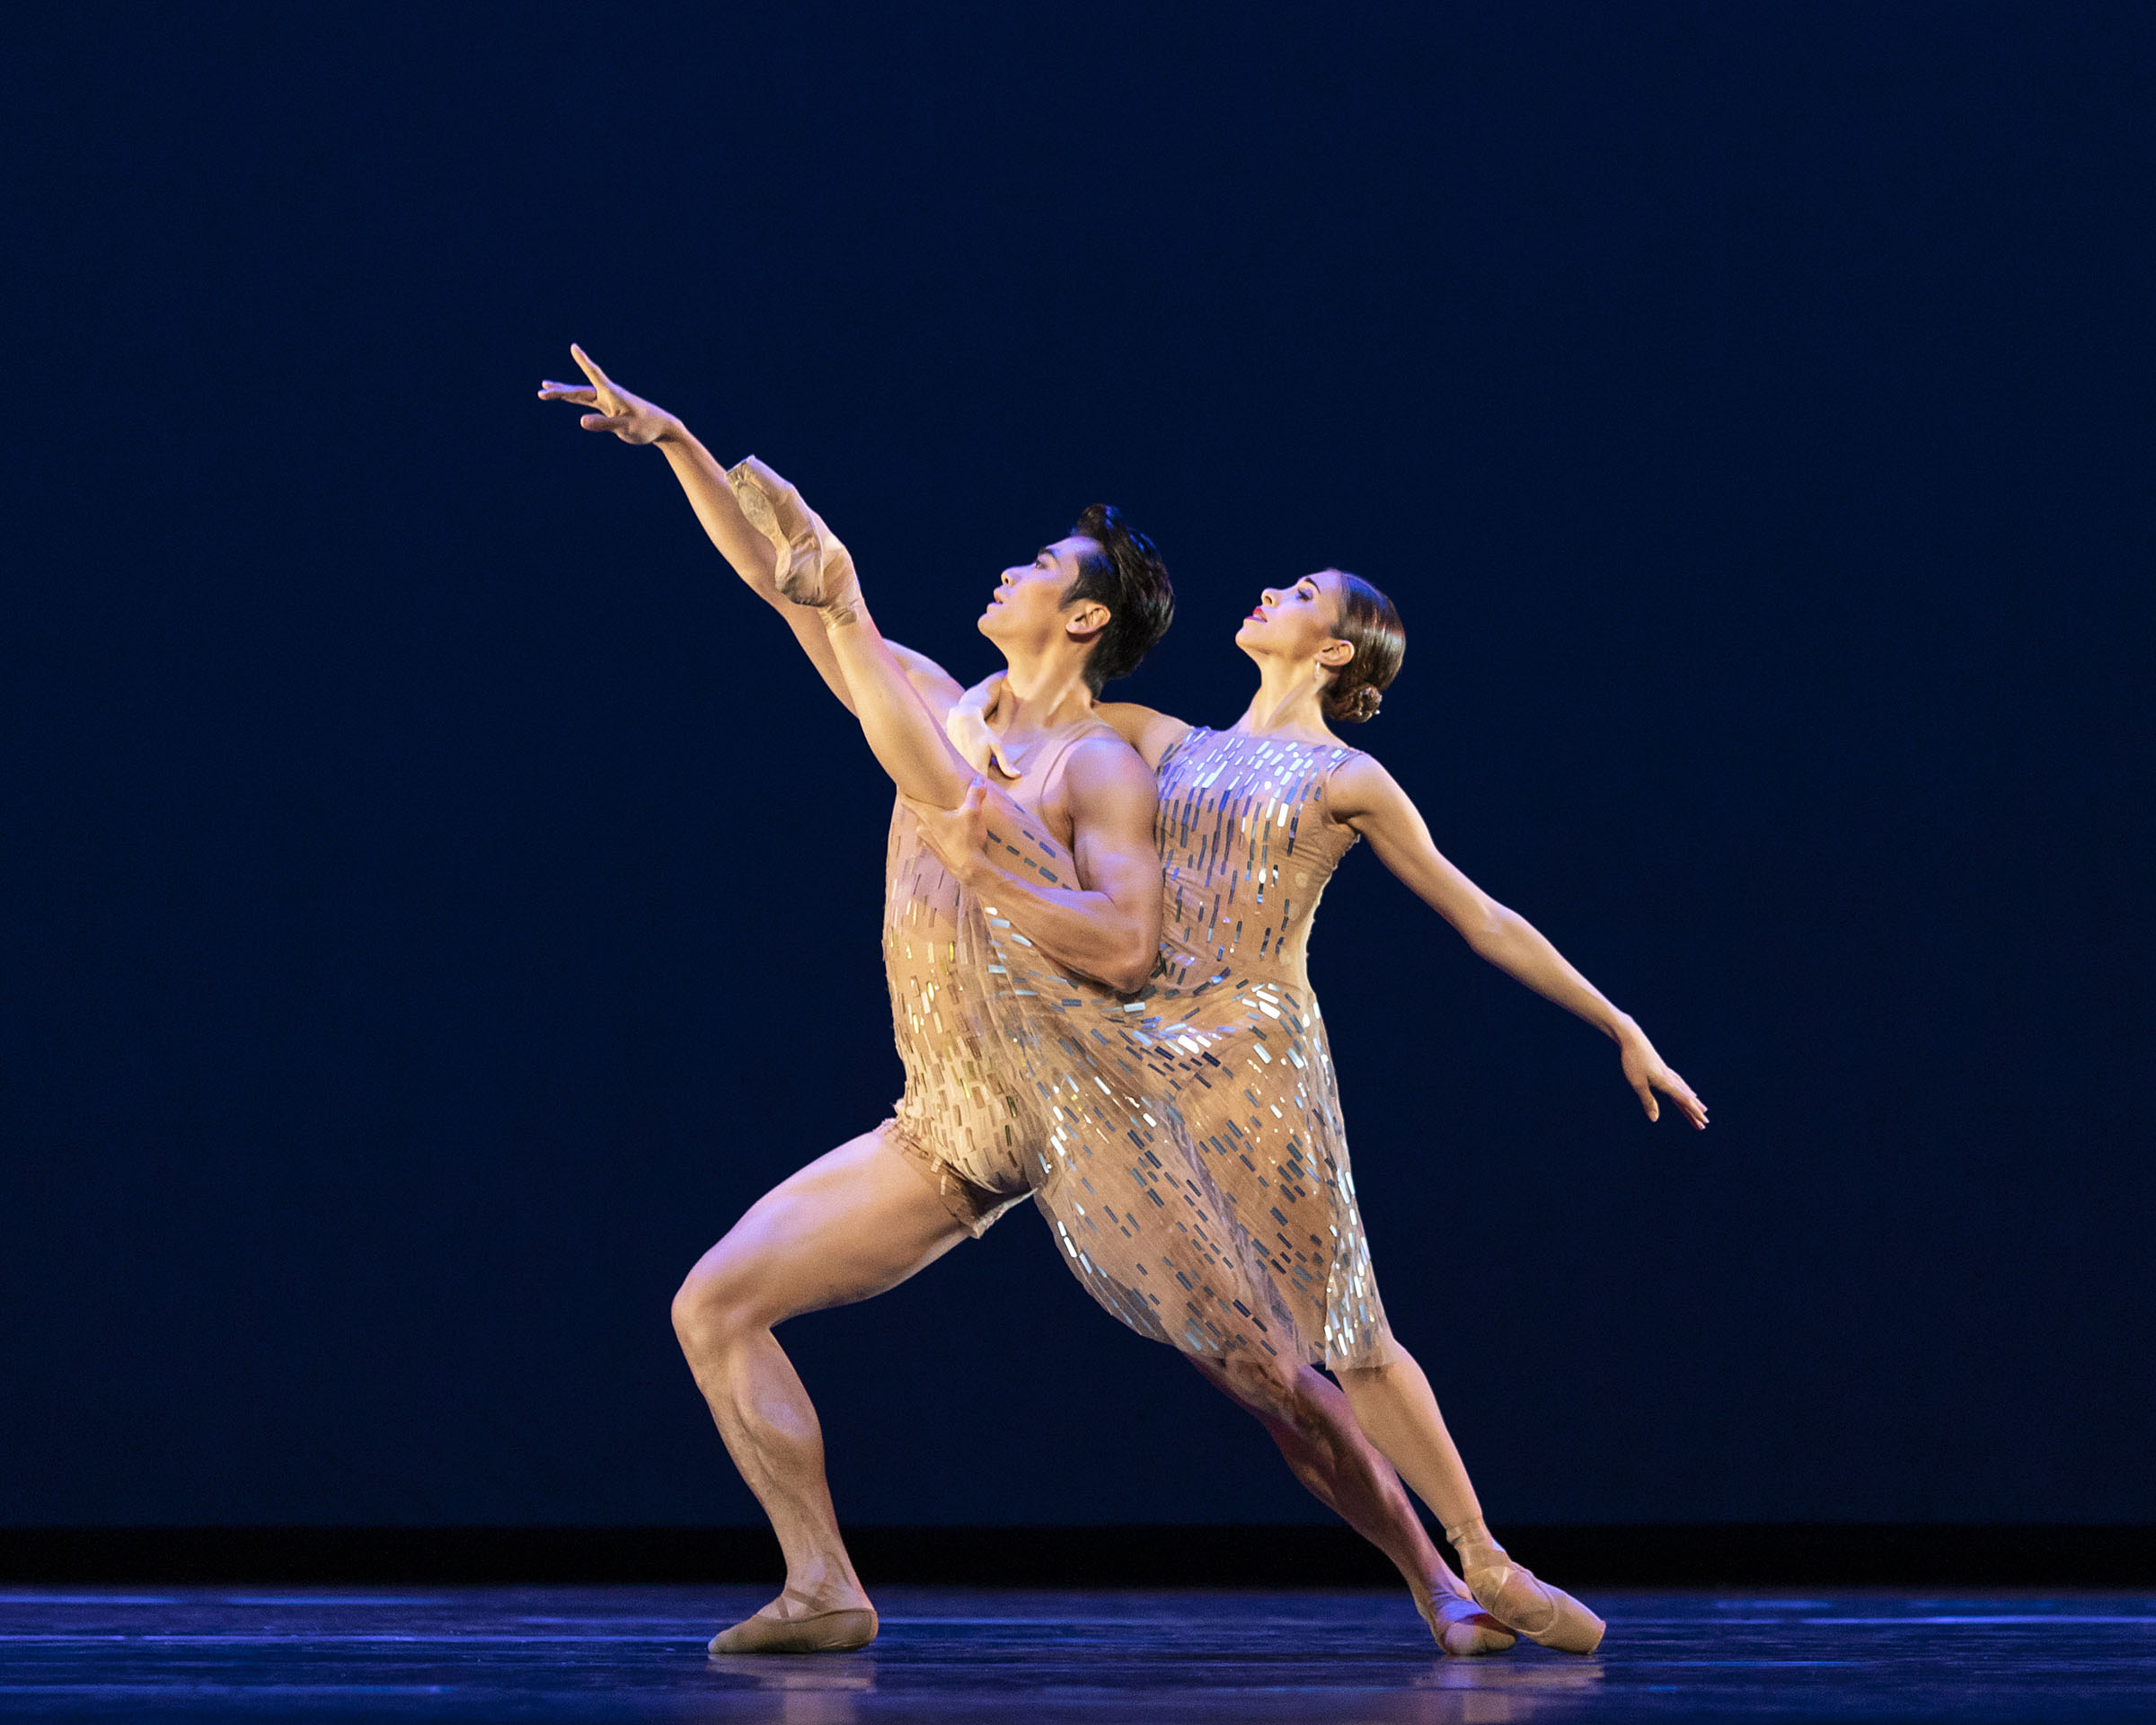 Ryoichi Hirano and Yasmine Nagdhi in 'Within the Golden Hour' part of '21st Century Choreographers' at The Royal Opera House